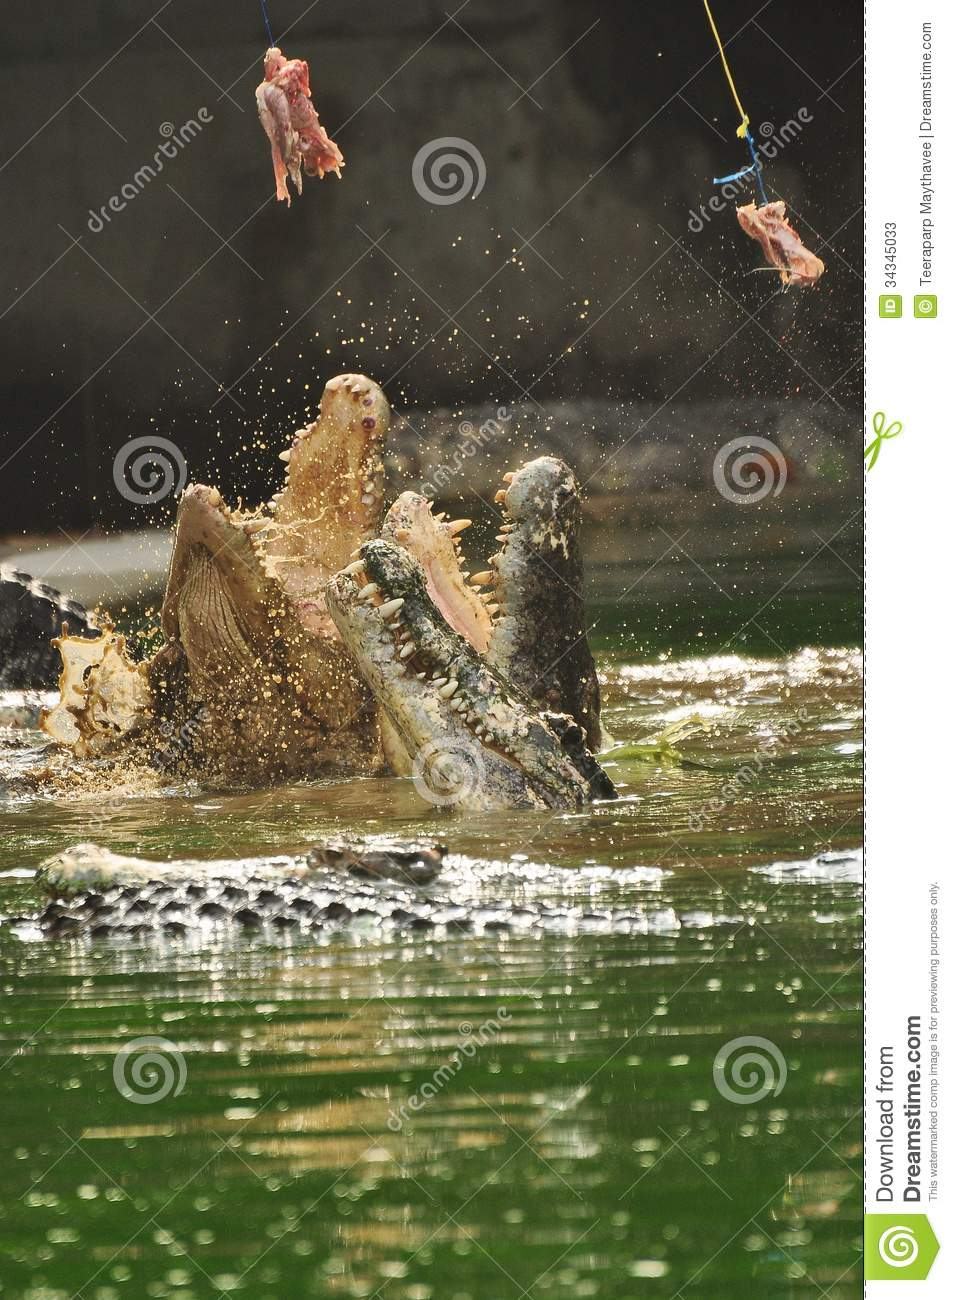 Feeding Crocodile Stock Photos - Image: 34345033